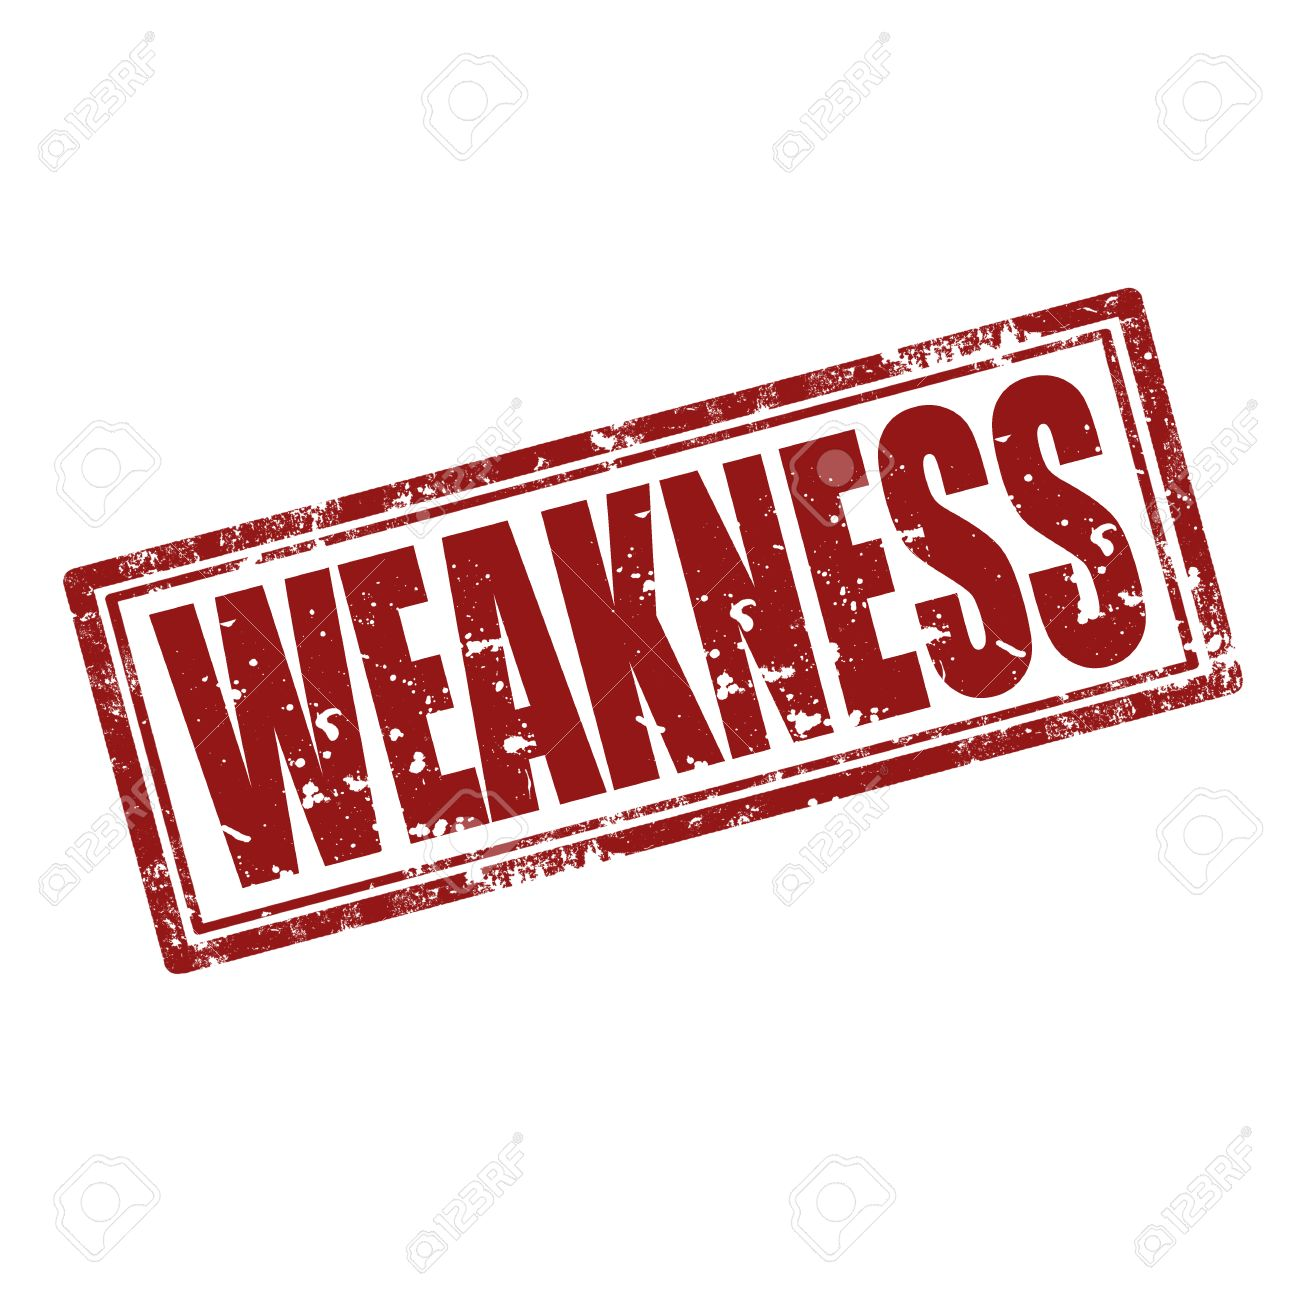 symbol of weakness images stock pictures royalty symbol of symbol of weakness grunge rubber stamp word weakness